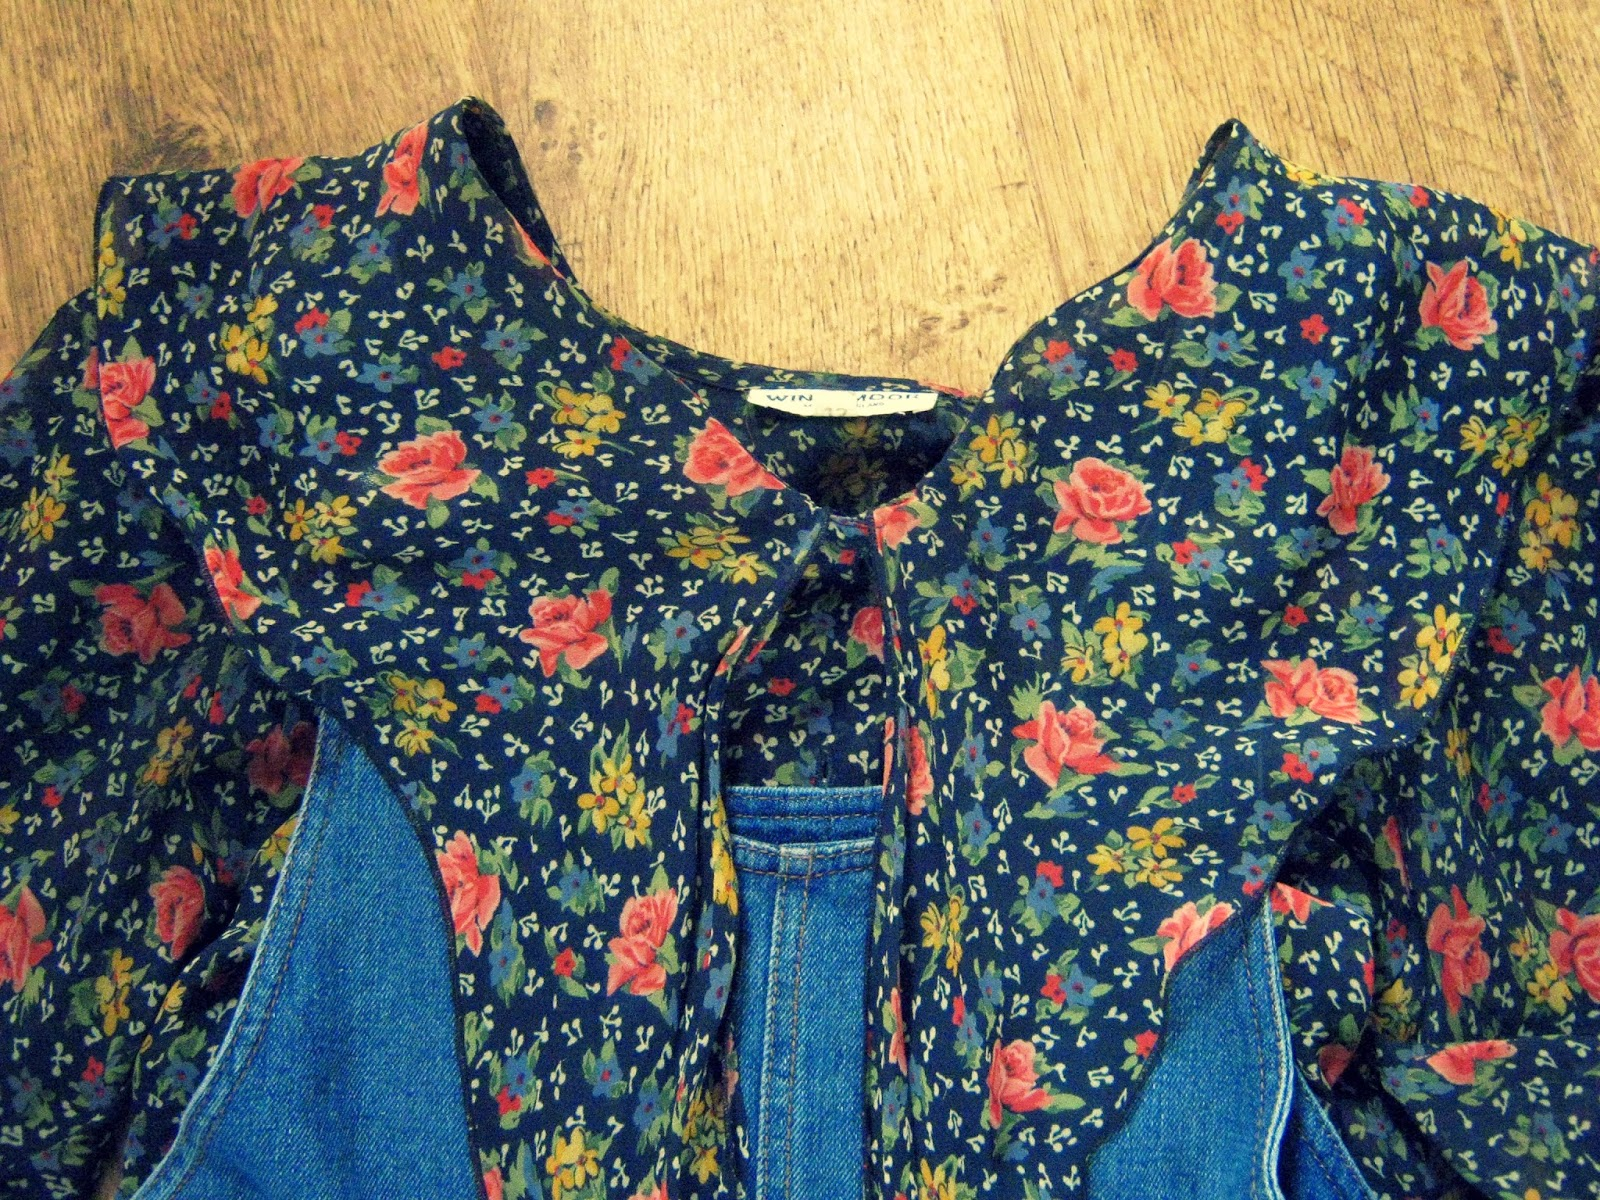 OOTD Floral Blouse and Dungaree Dress